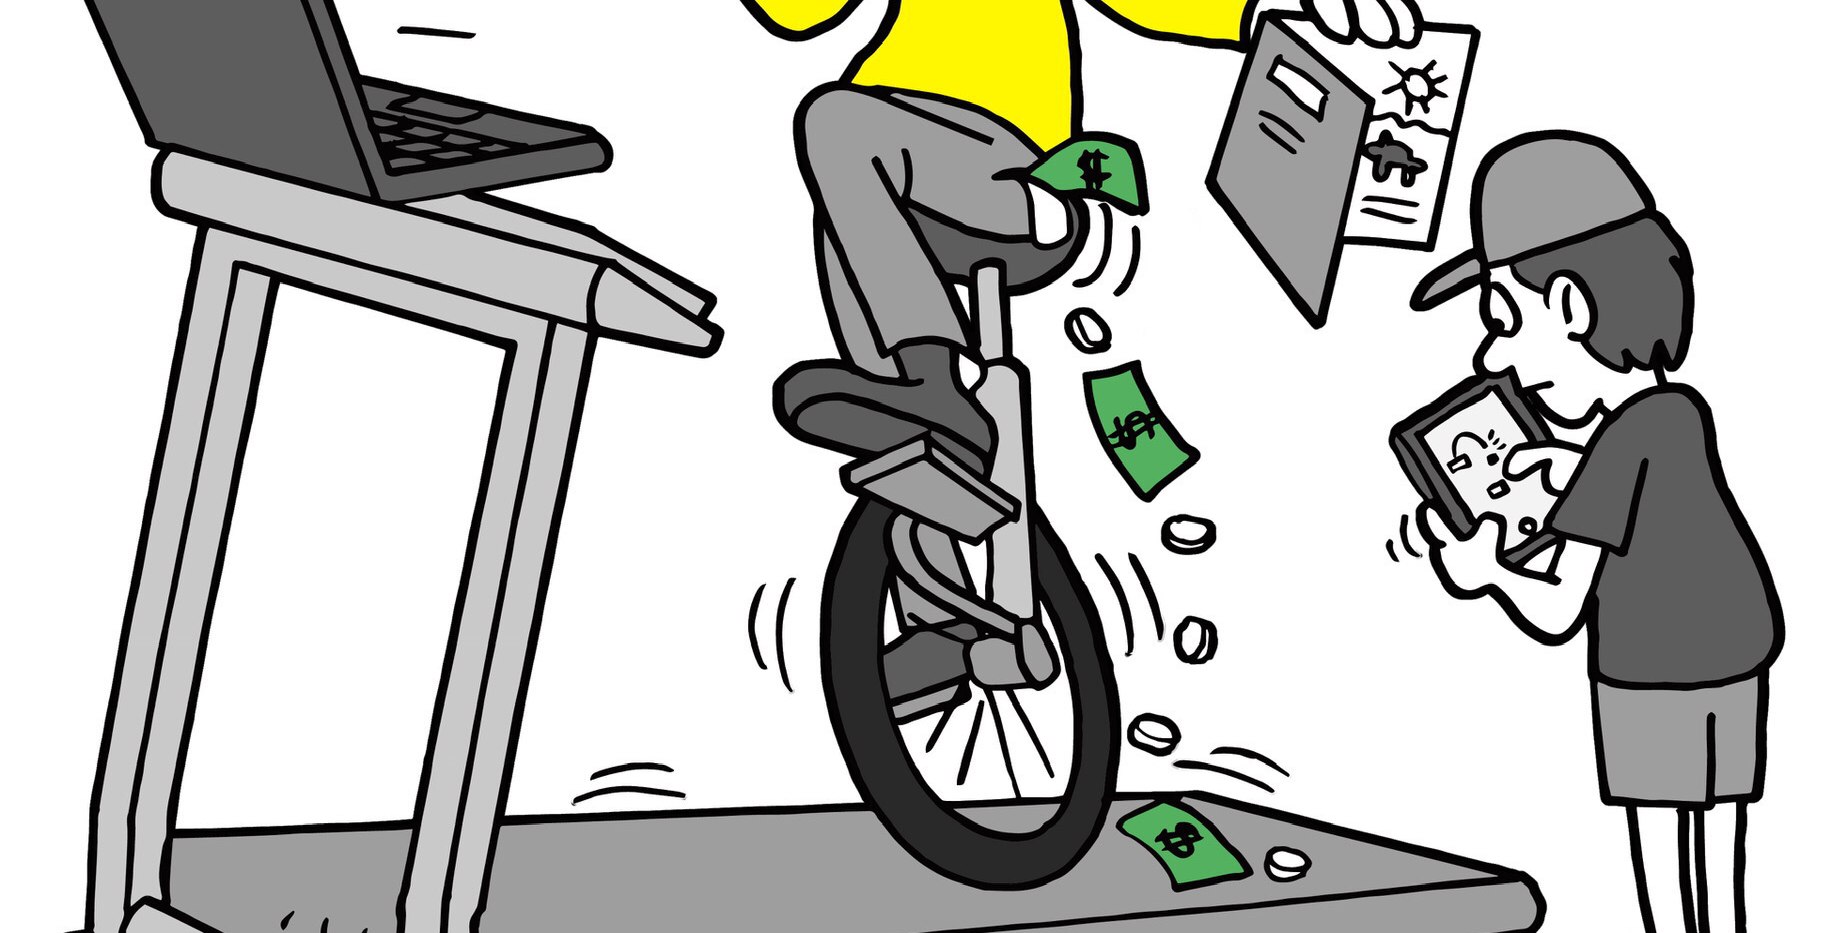 UnicycleOnTreadmill.png